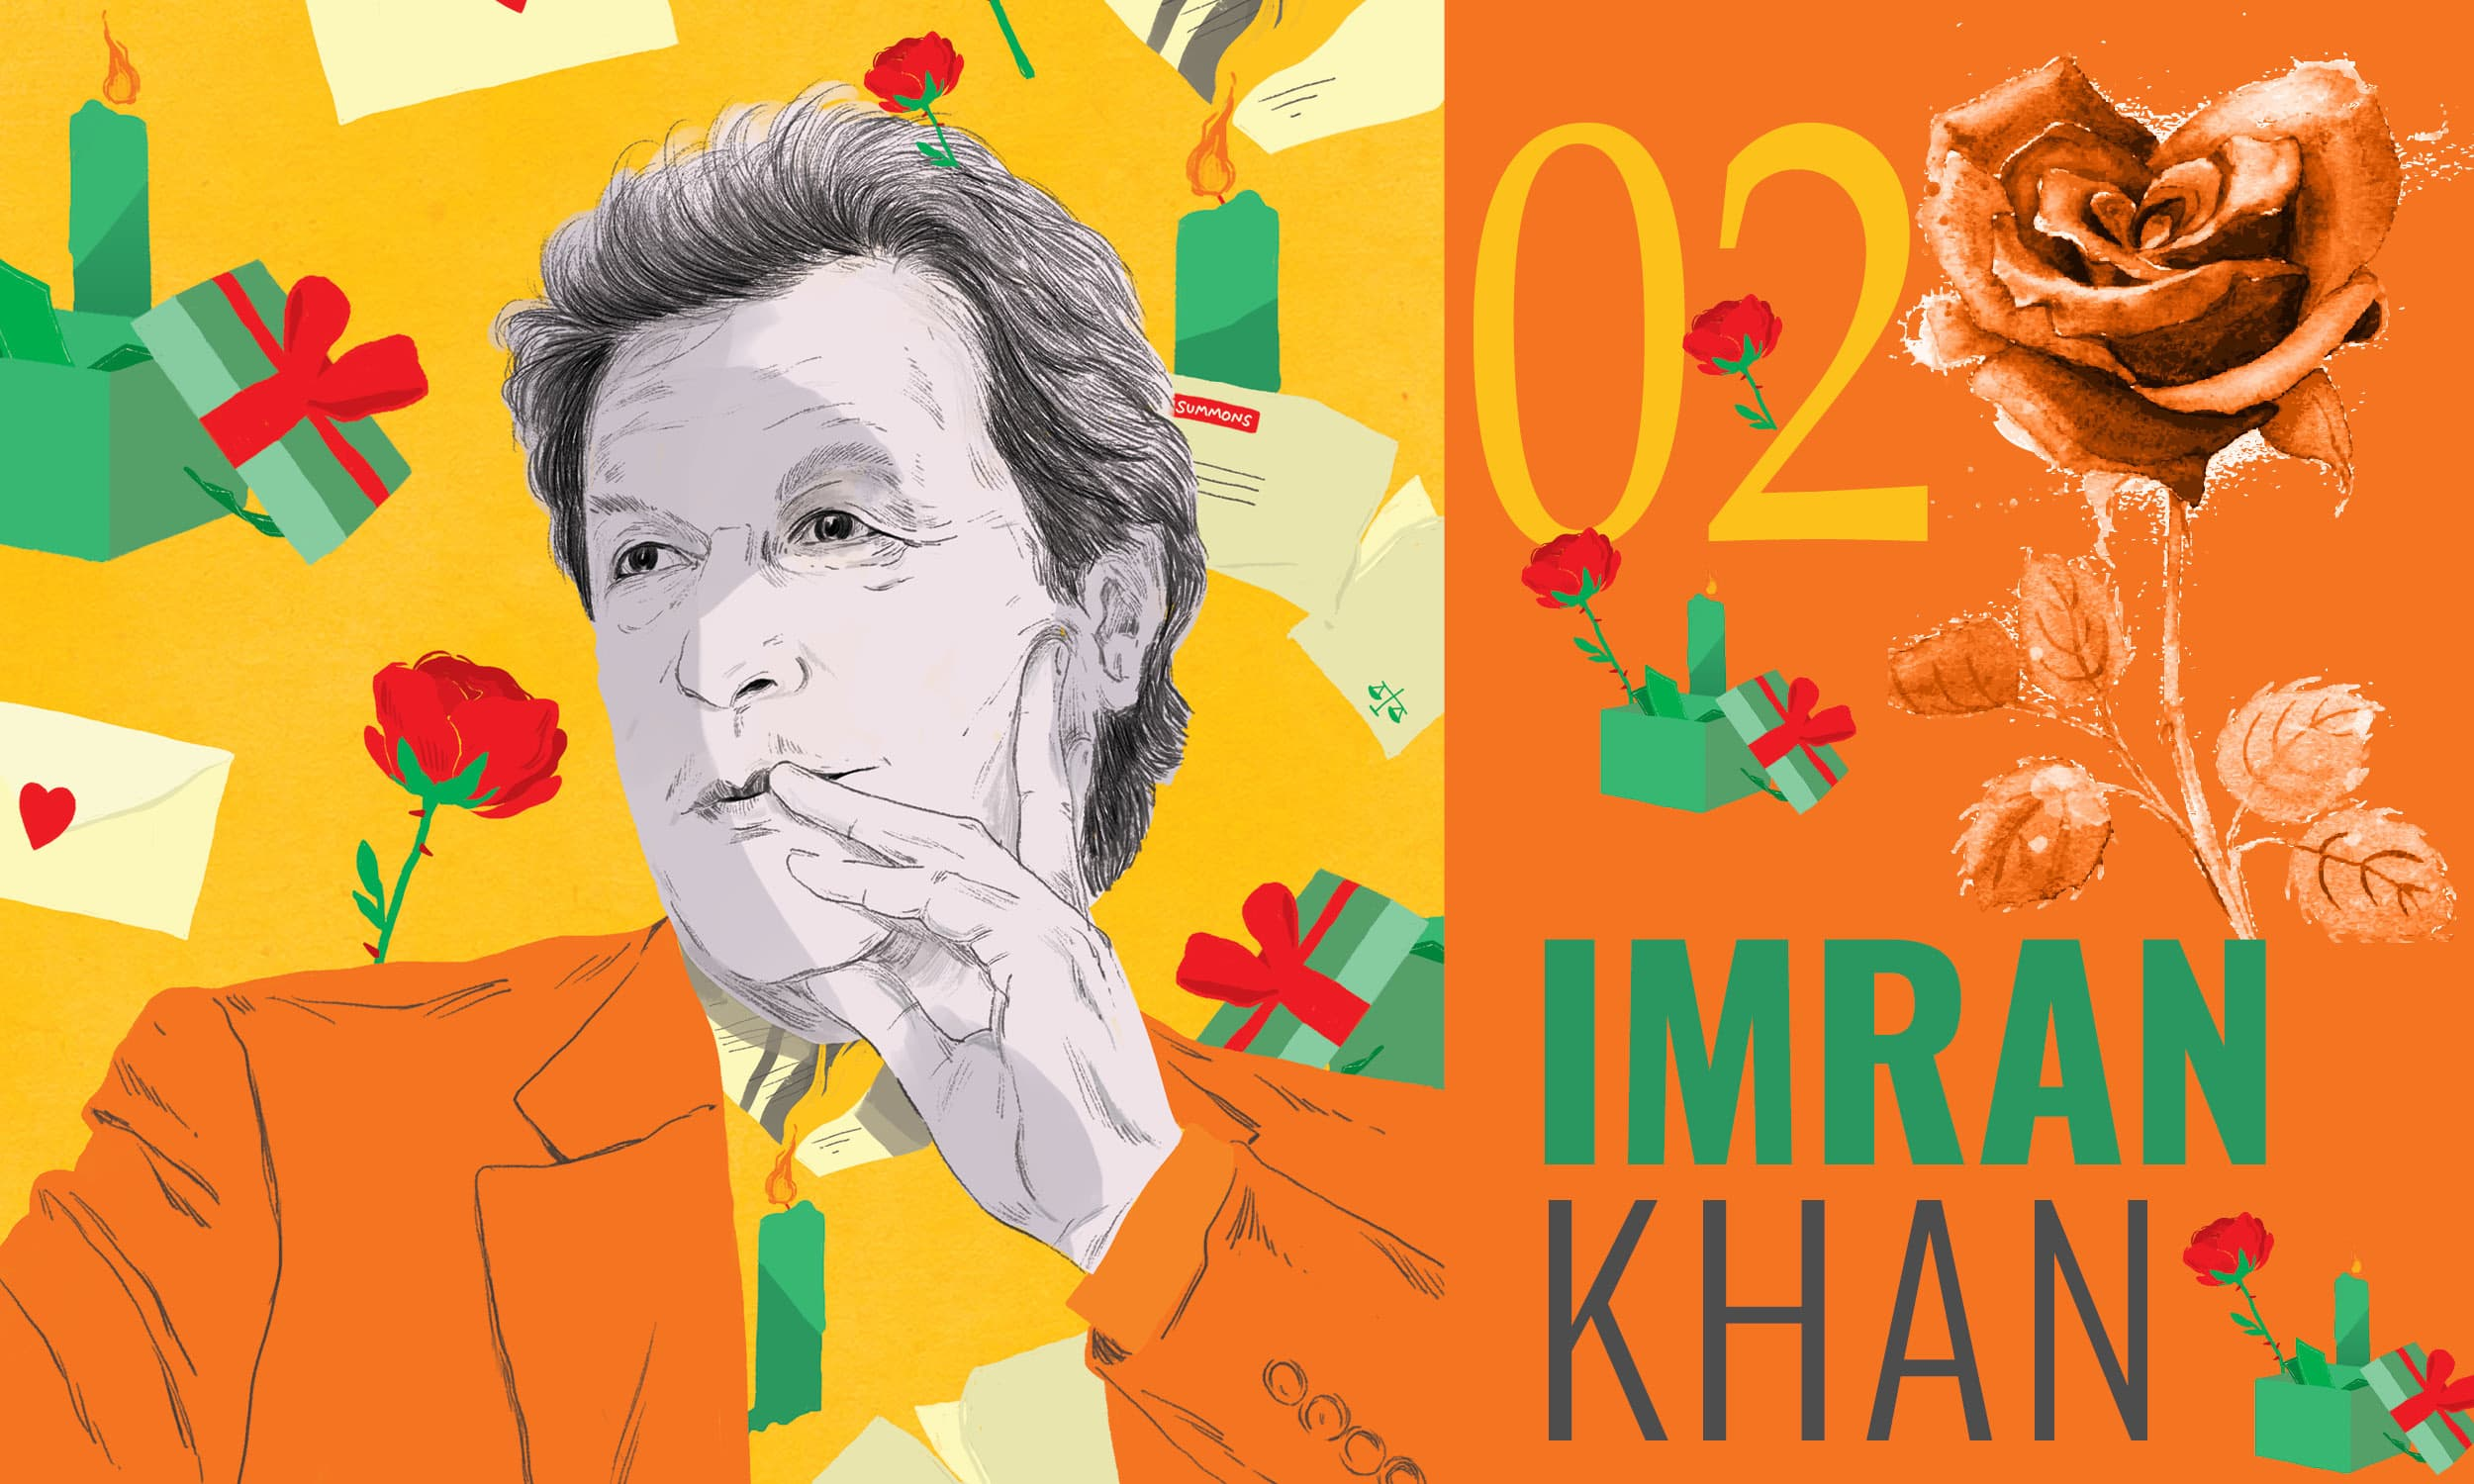 Imran Khan: Courting the law and facing law suits